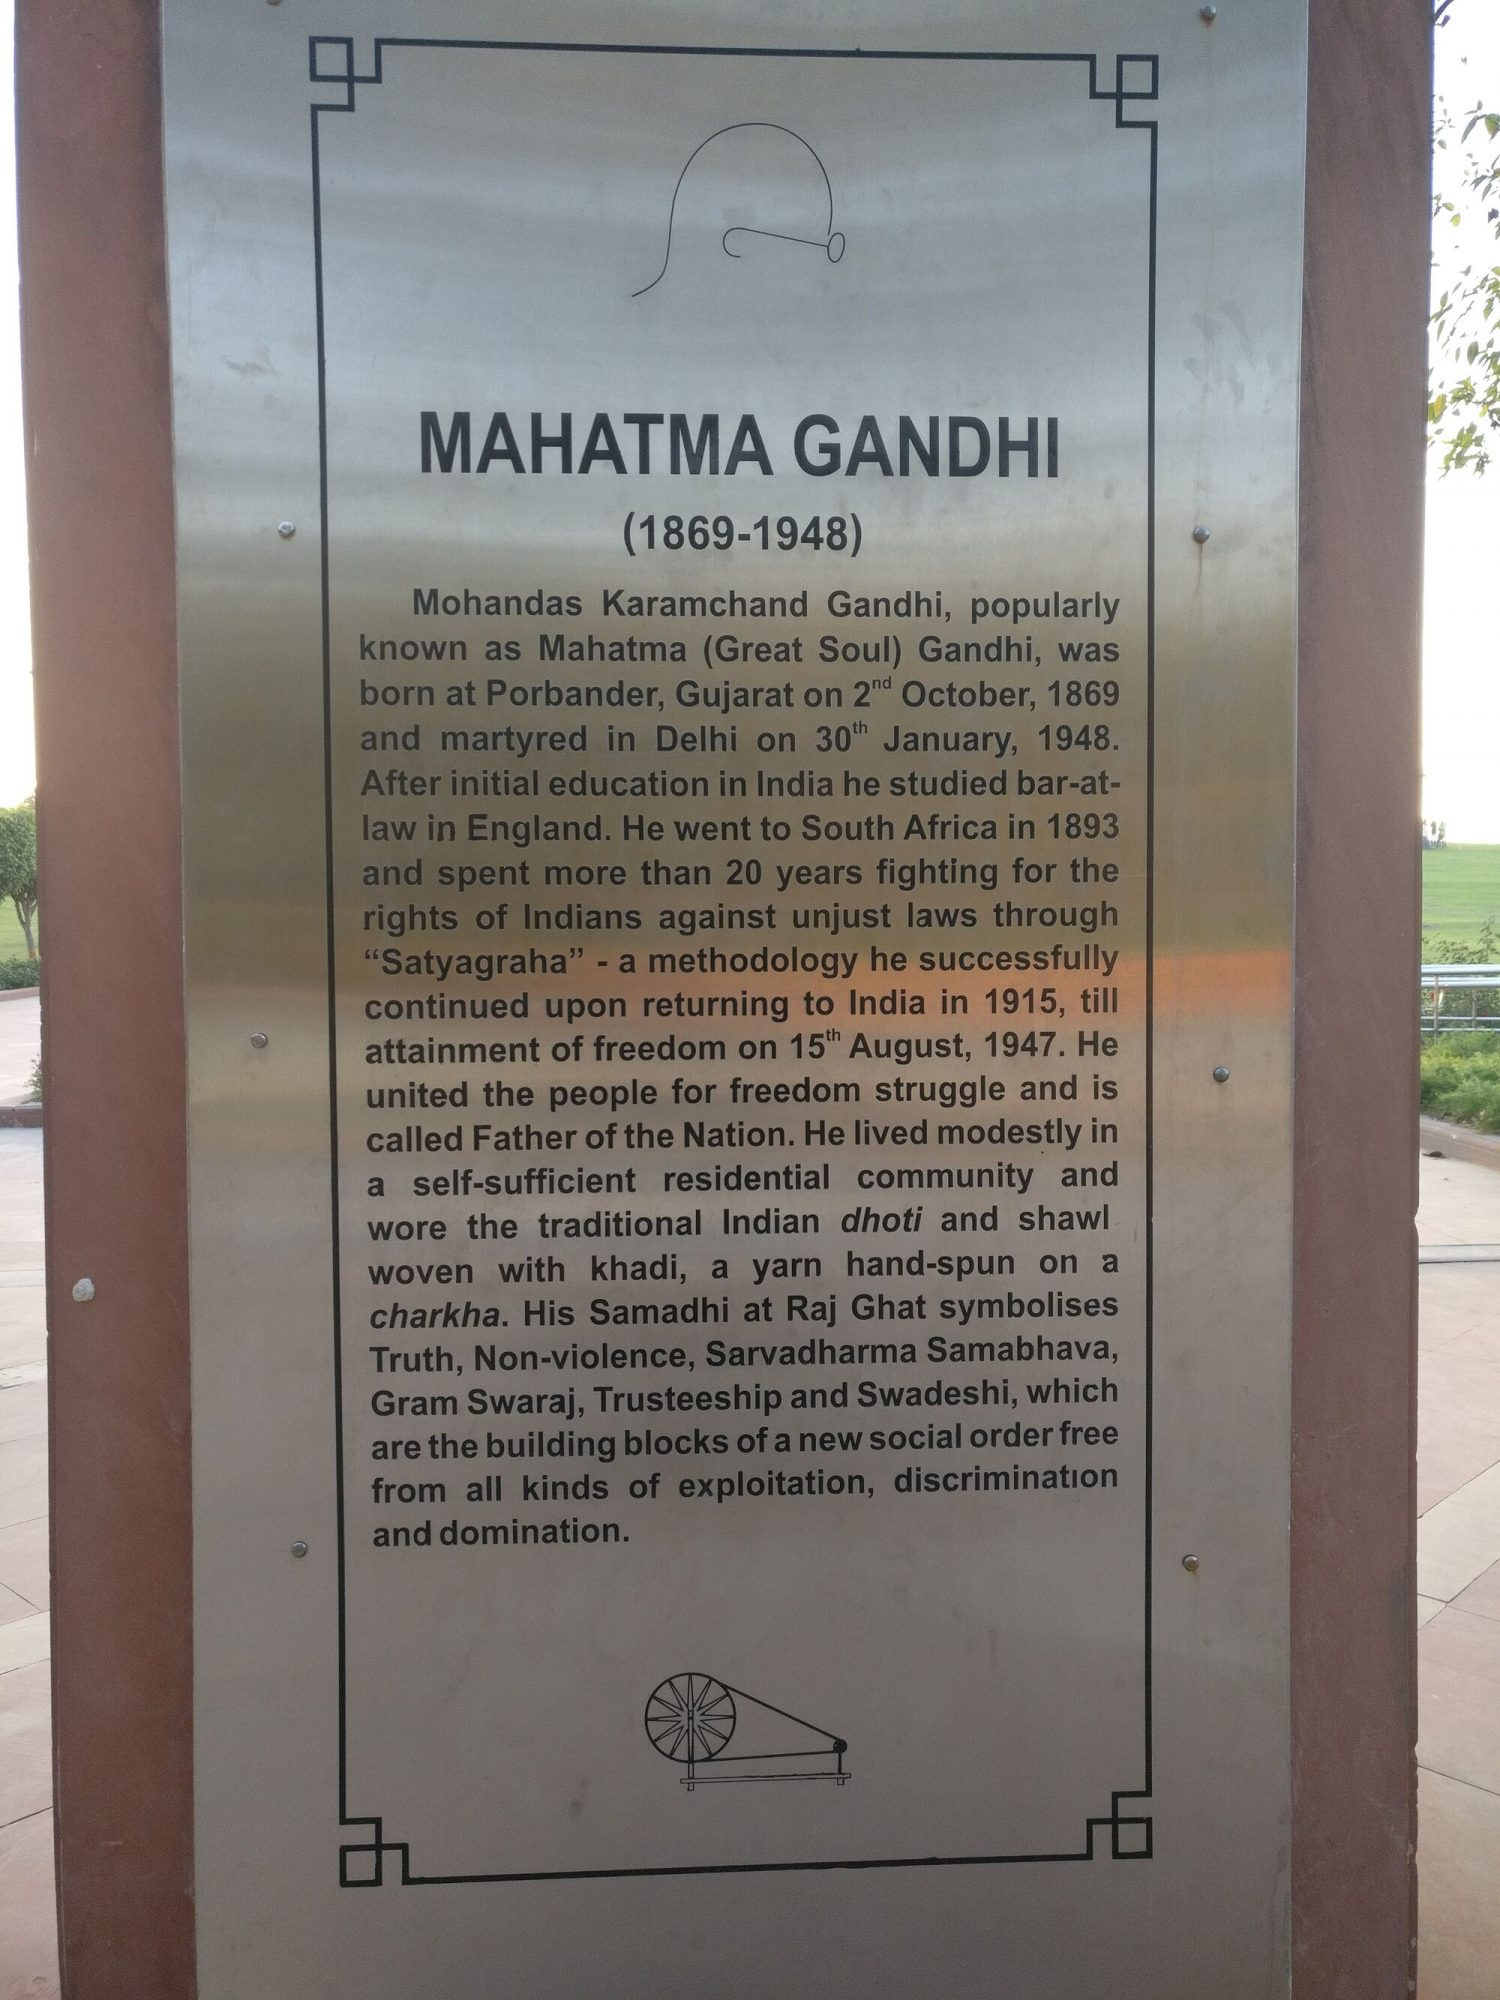 A short biography of Gandhiji (1869-1948), the Father of the Nation (India).